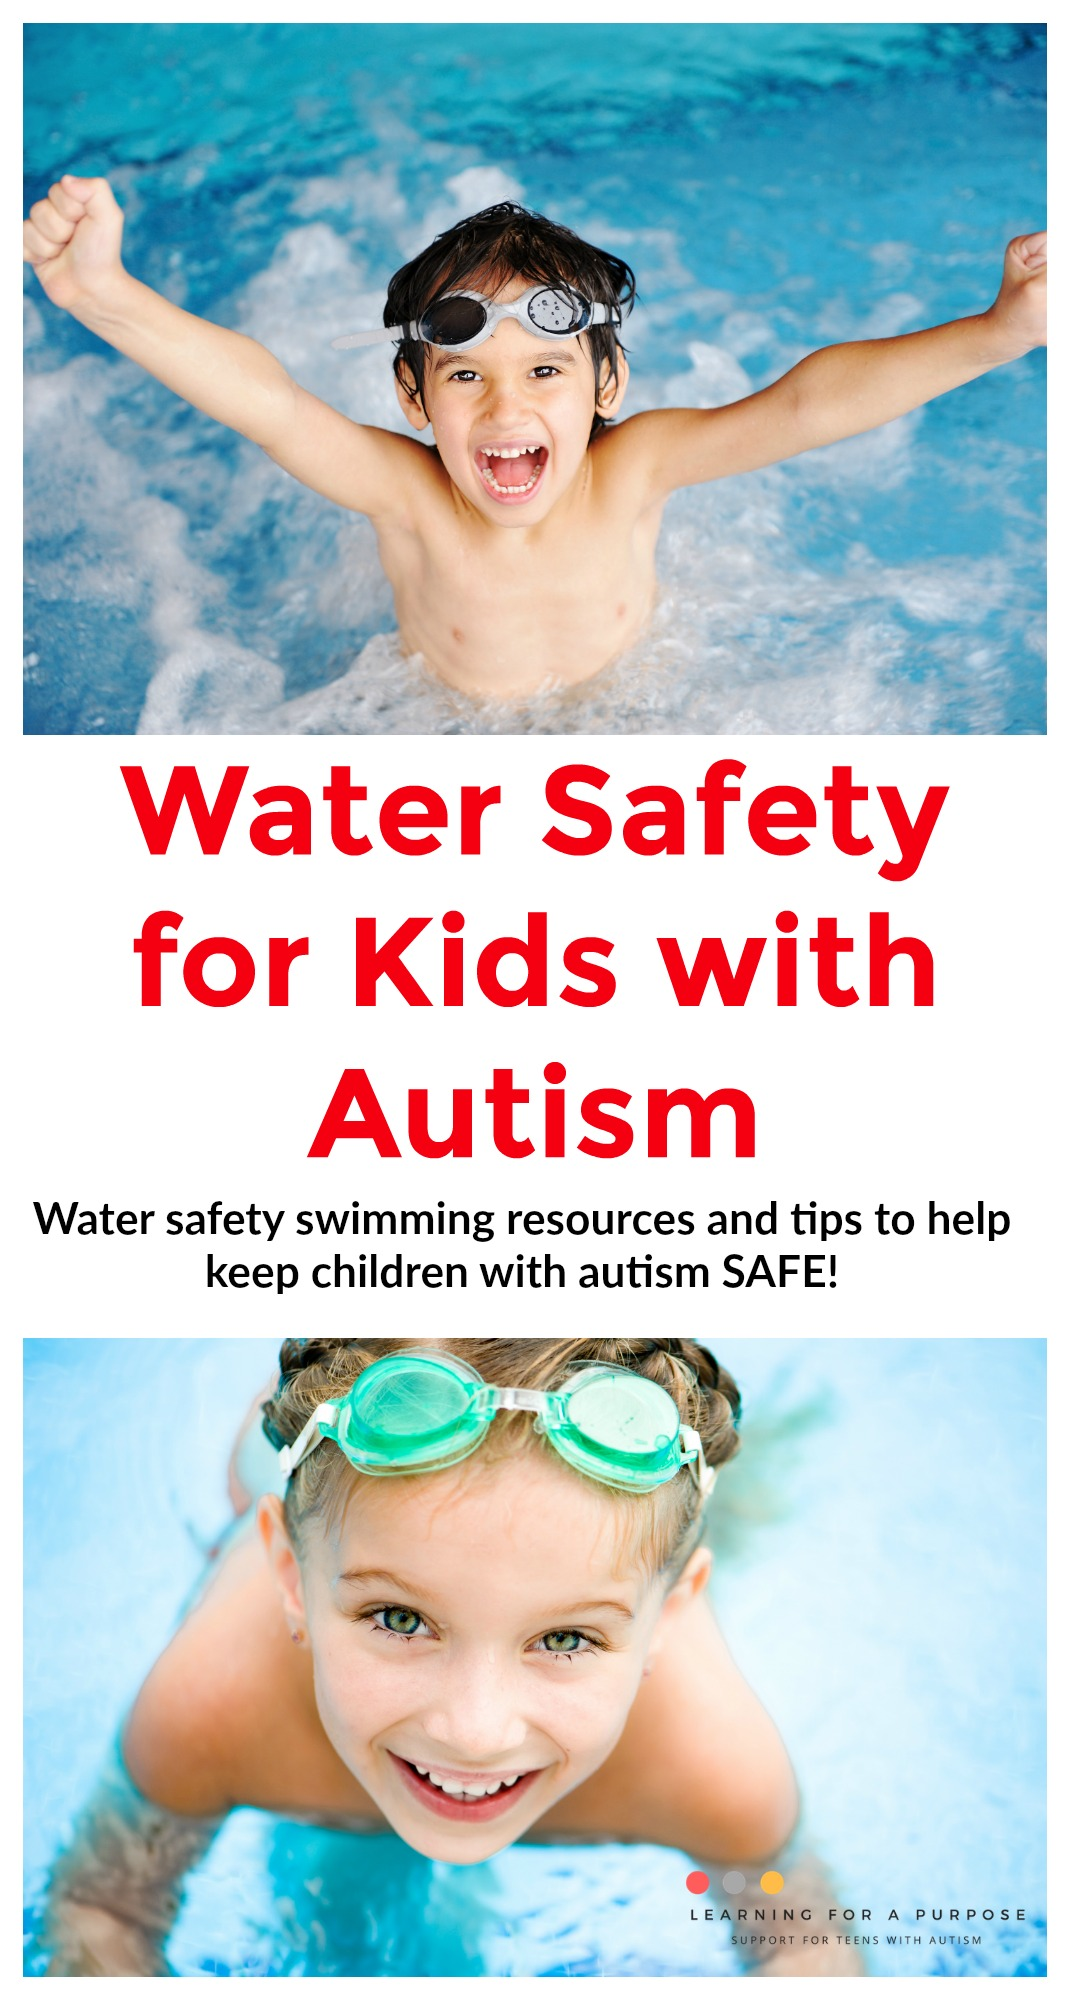 water safety for kids with autism #safety #water #swim #autism